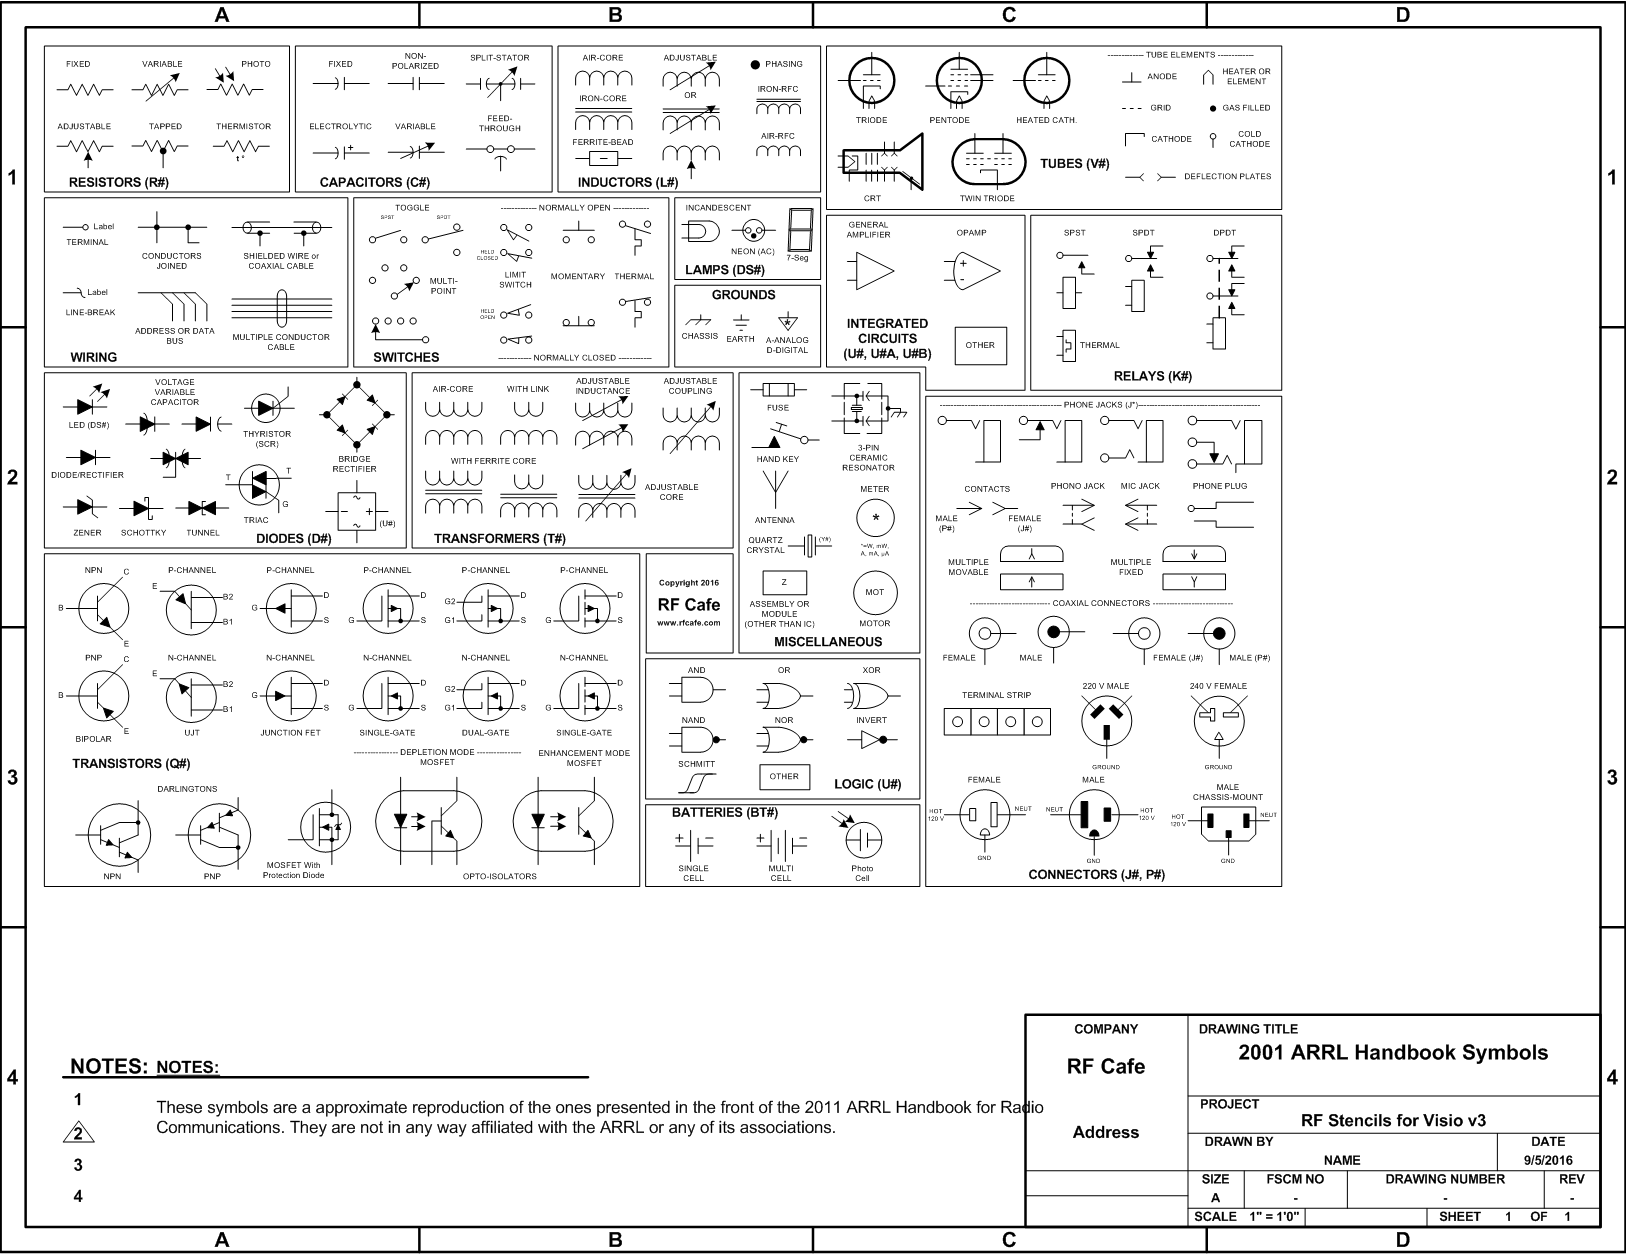 hight resolution of visio circuit schematic symbols from the 2011 arrl handbook rf cafe